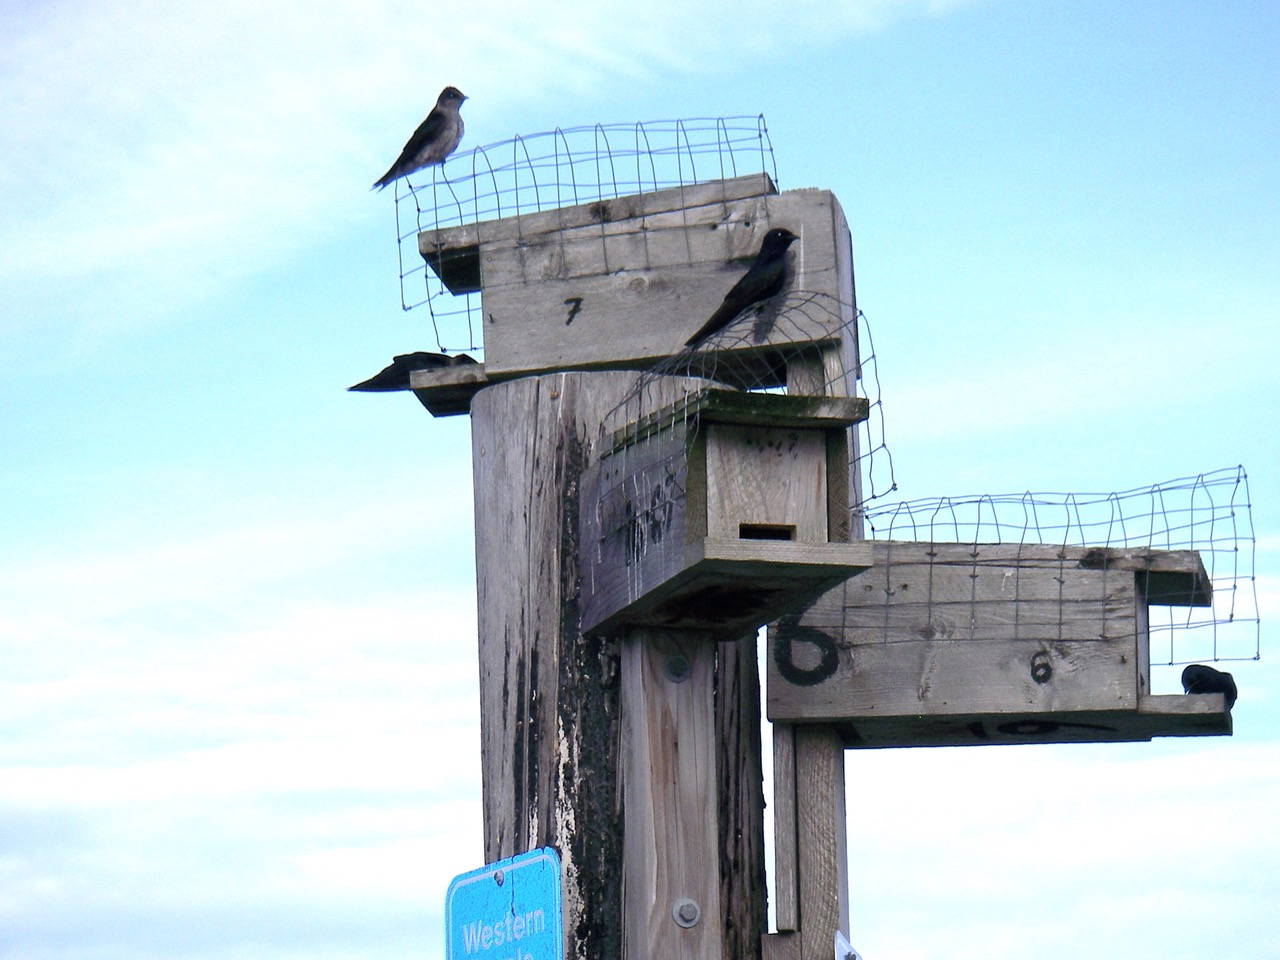 Nestbox cluster in Bennett Bay showing wire predator guards. Photo: B. Rochet